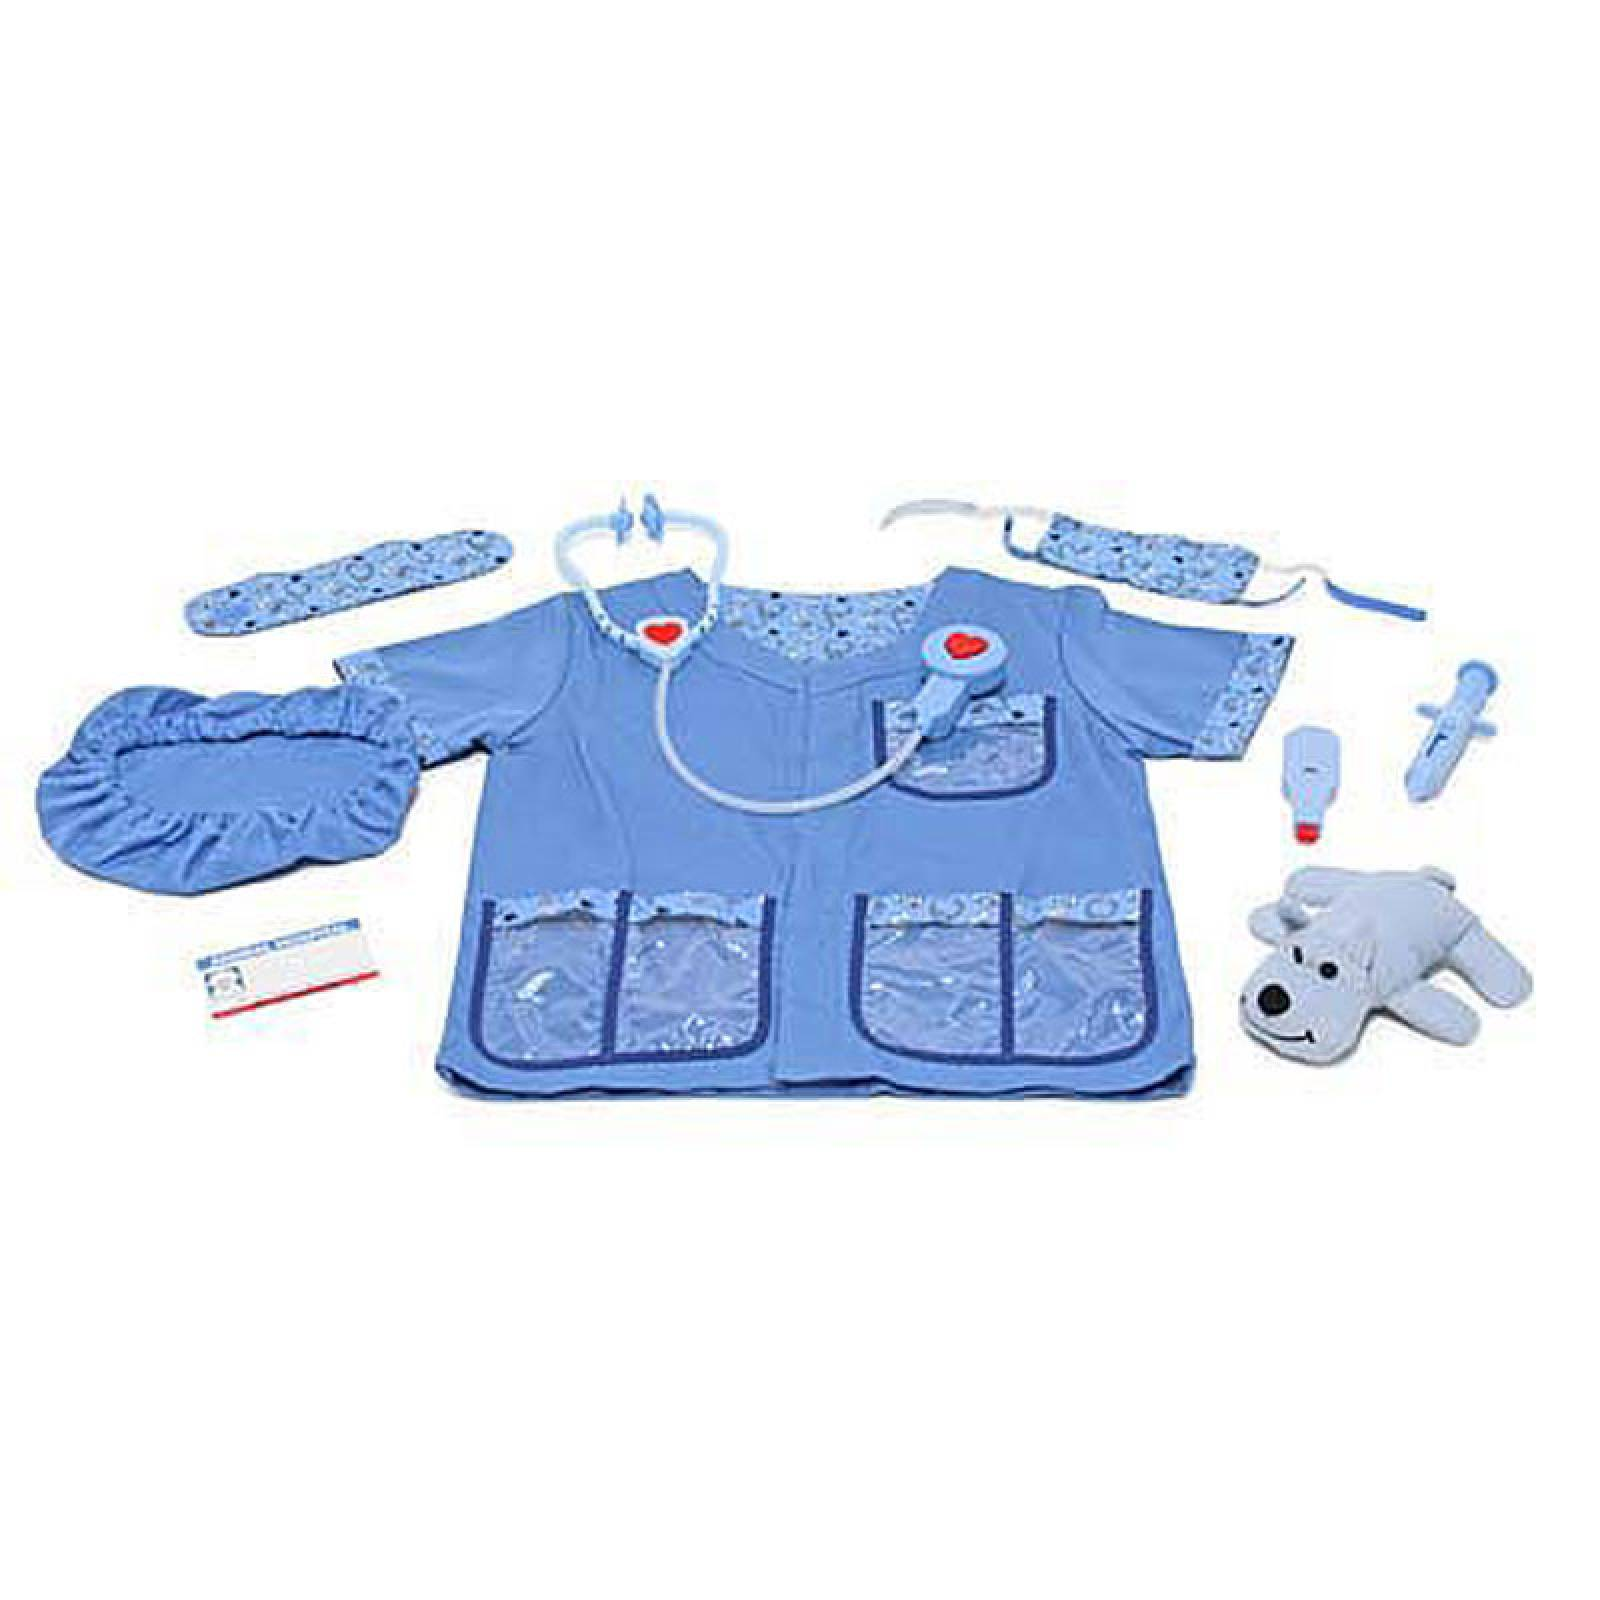 Fancy Dress Role Play Costume Set - Veterinarian thumbnails